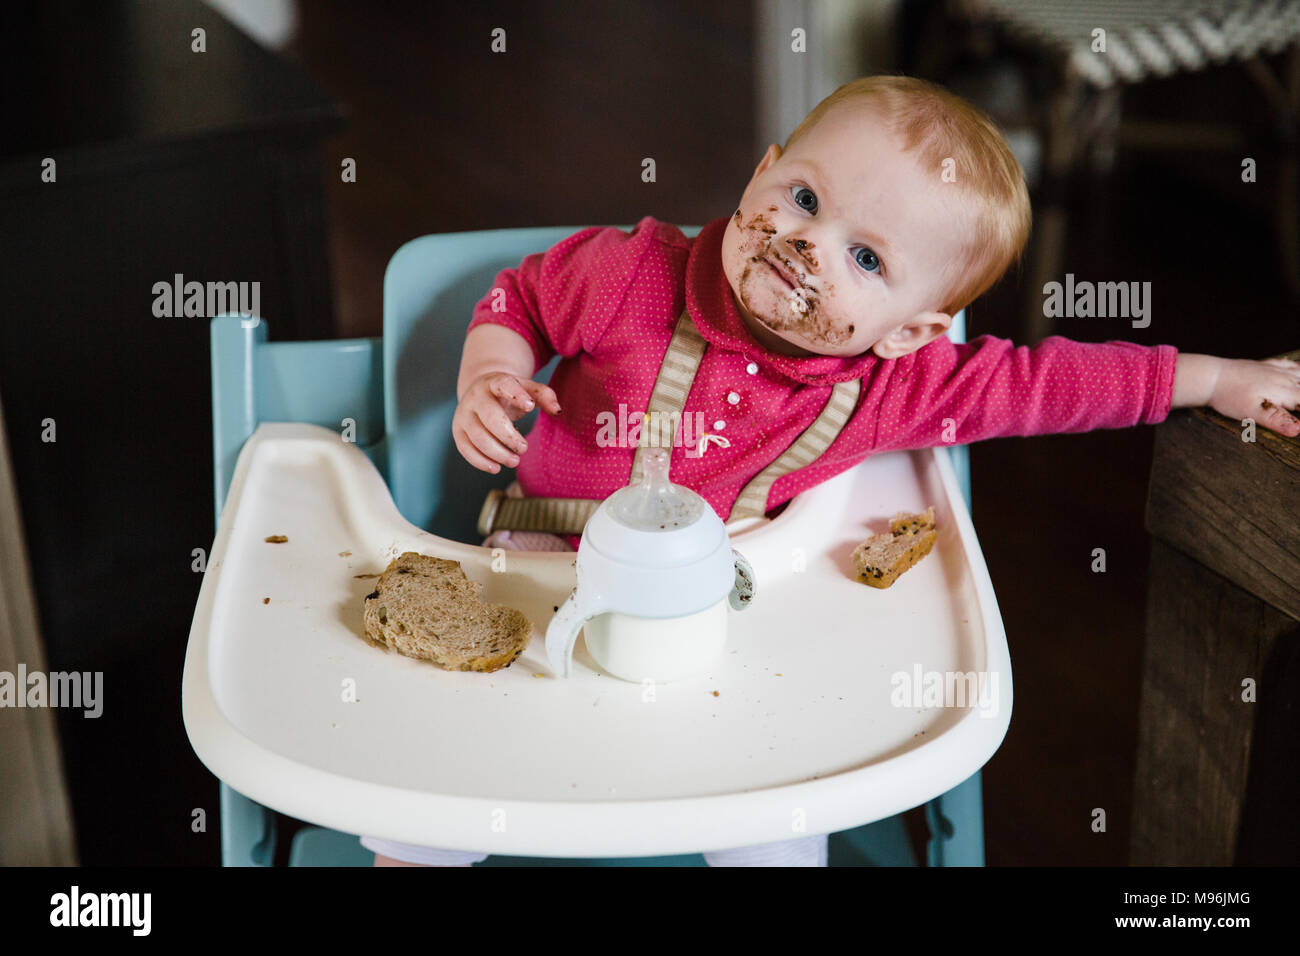 Baby in high chair with messy face eating meal - Stock Image